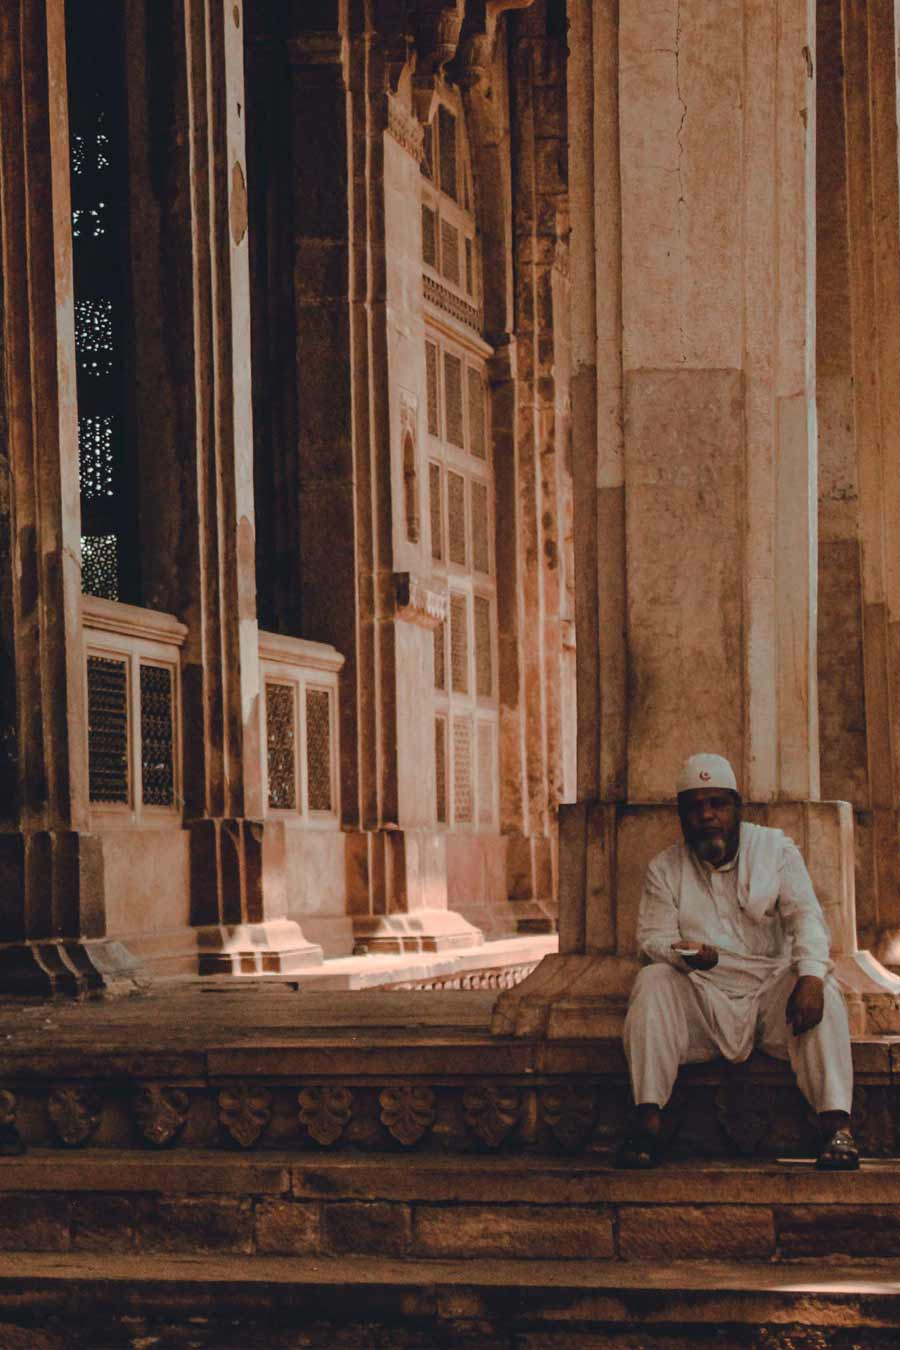 man-city-in-front-of-a-mosque-in-Gwalior-India